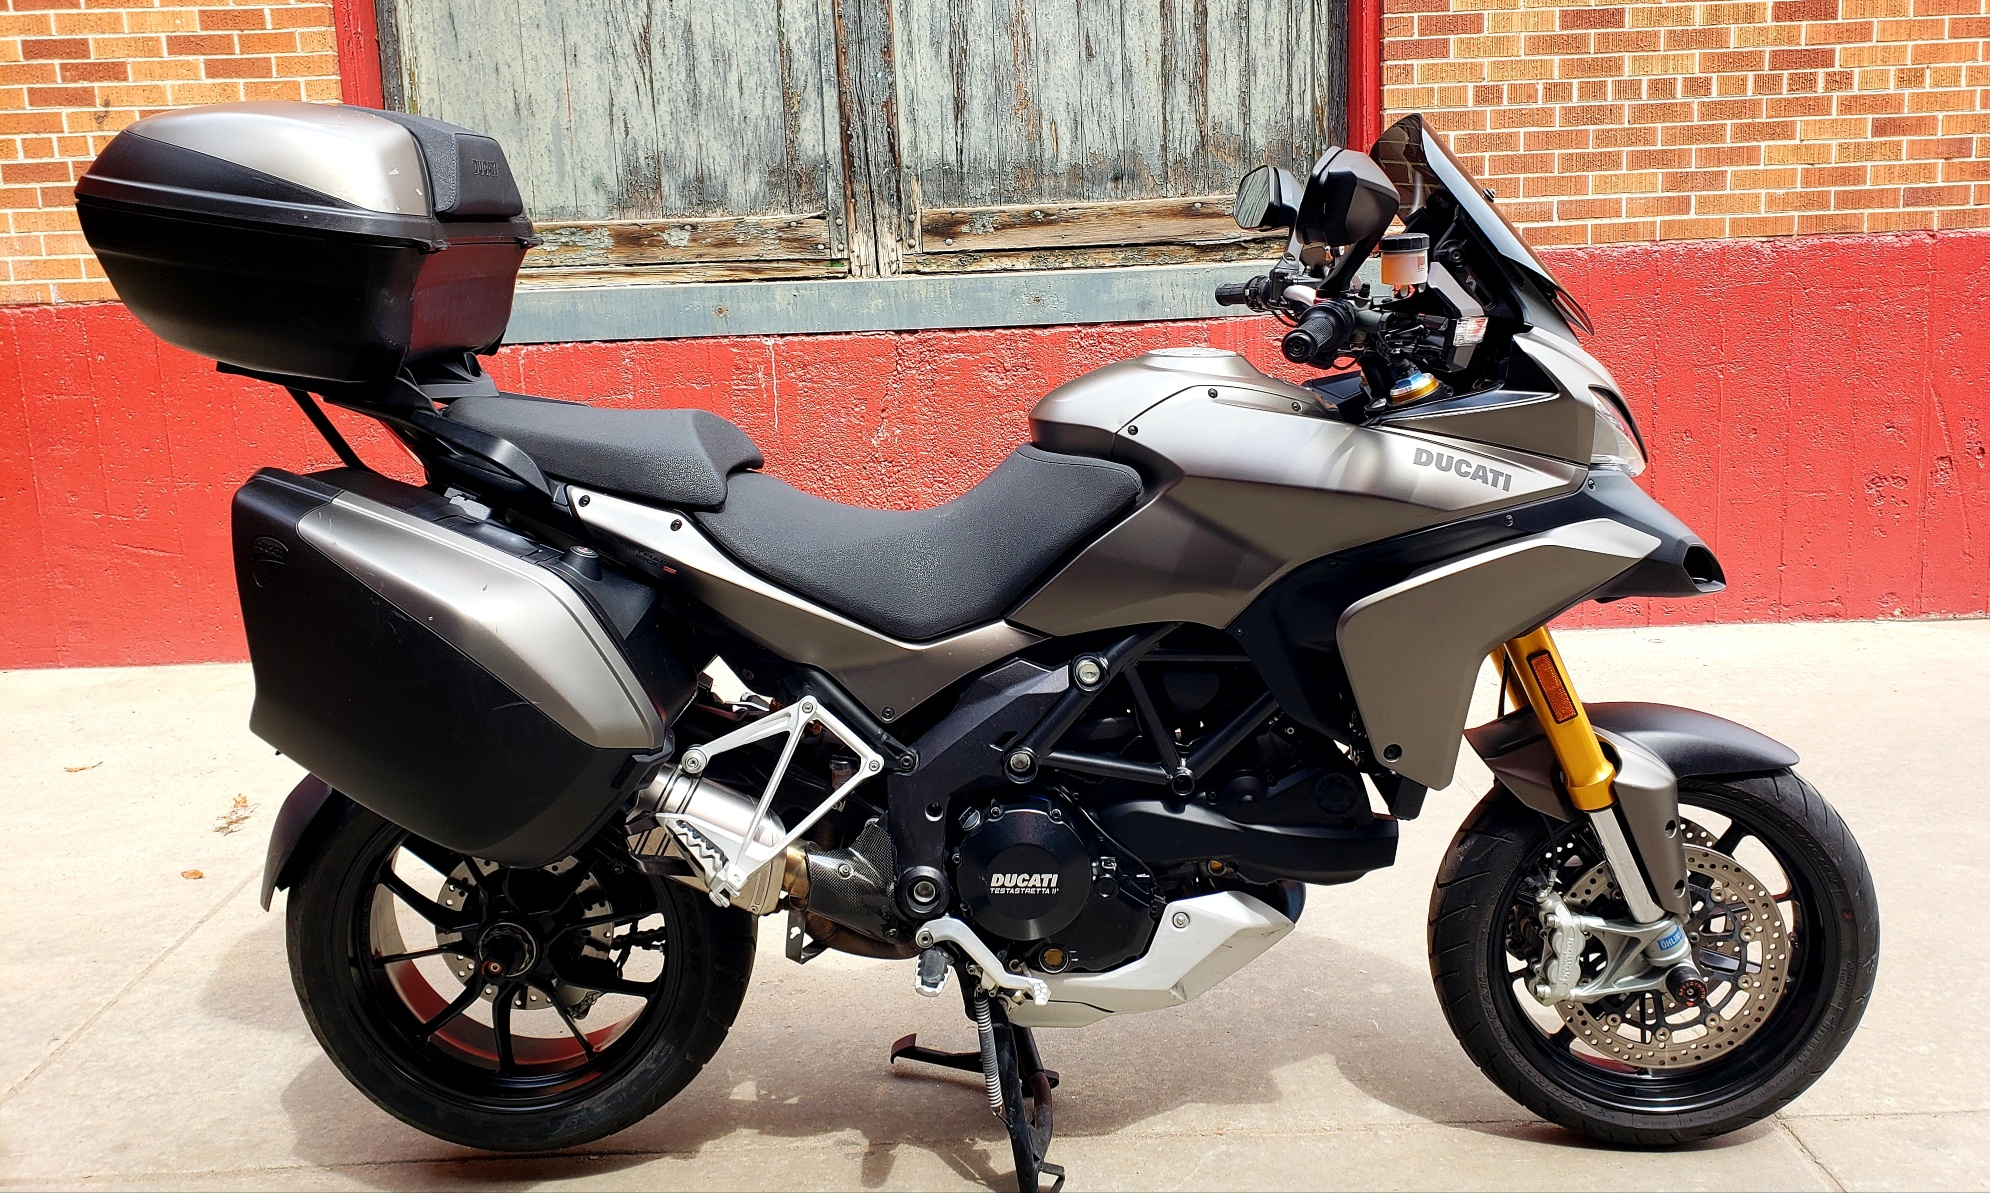 Pre-Owned 2012 Ducati MULTISTRADA 1200 S TOURING